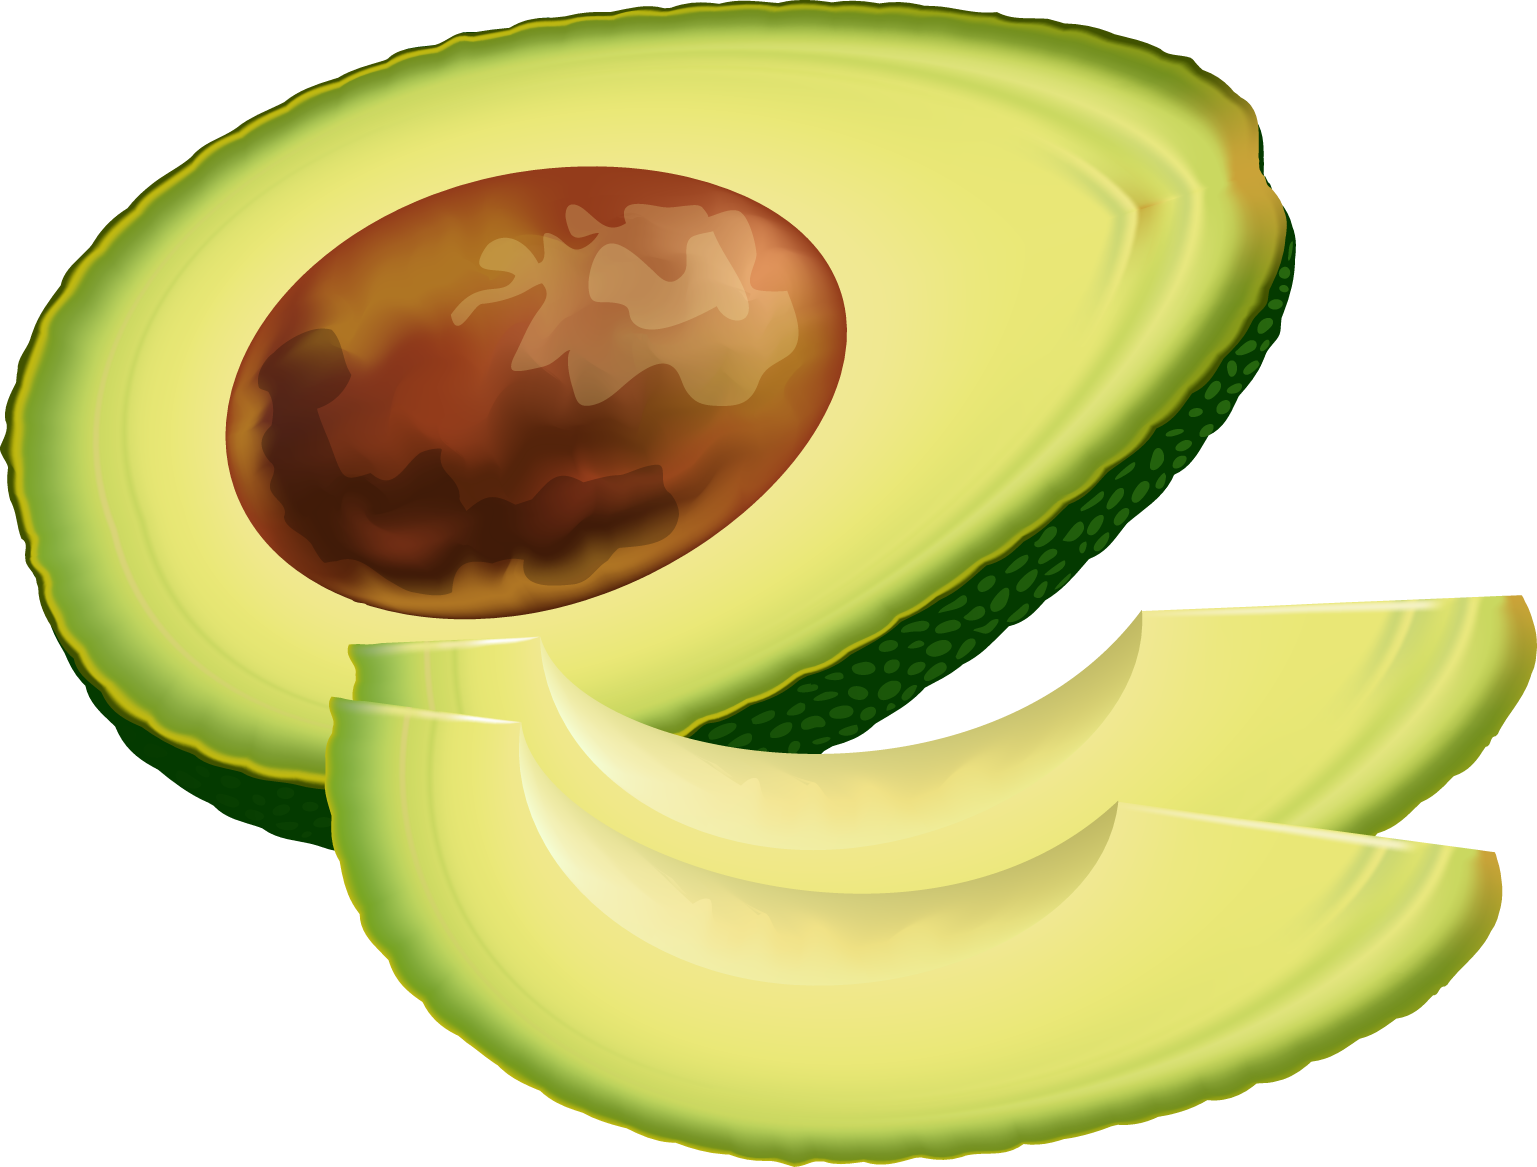 Free avocado cliparts download. Strawberries clipart gambar